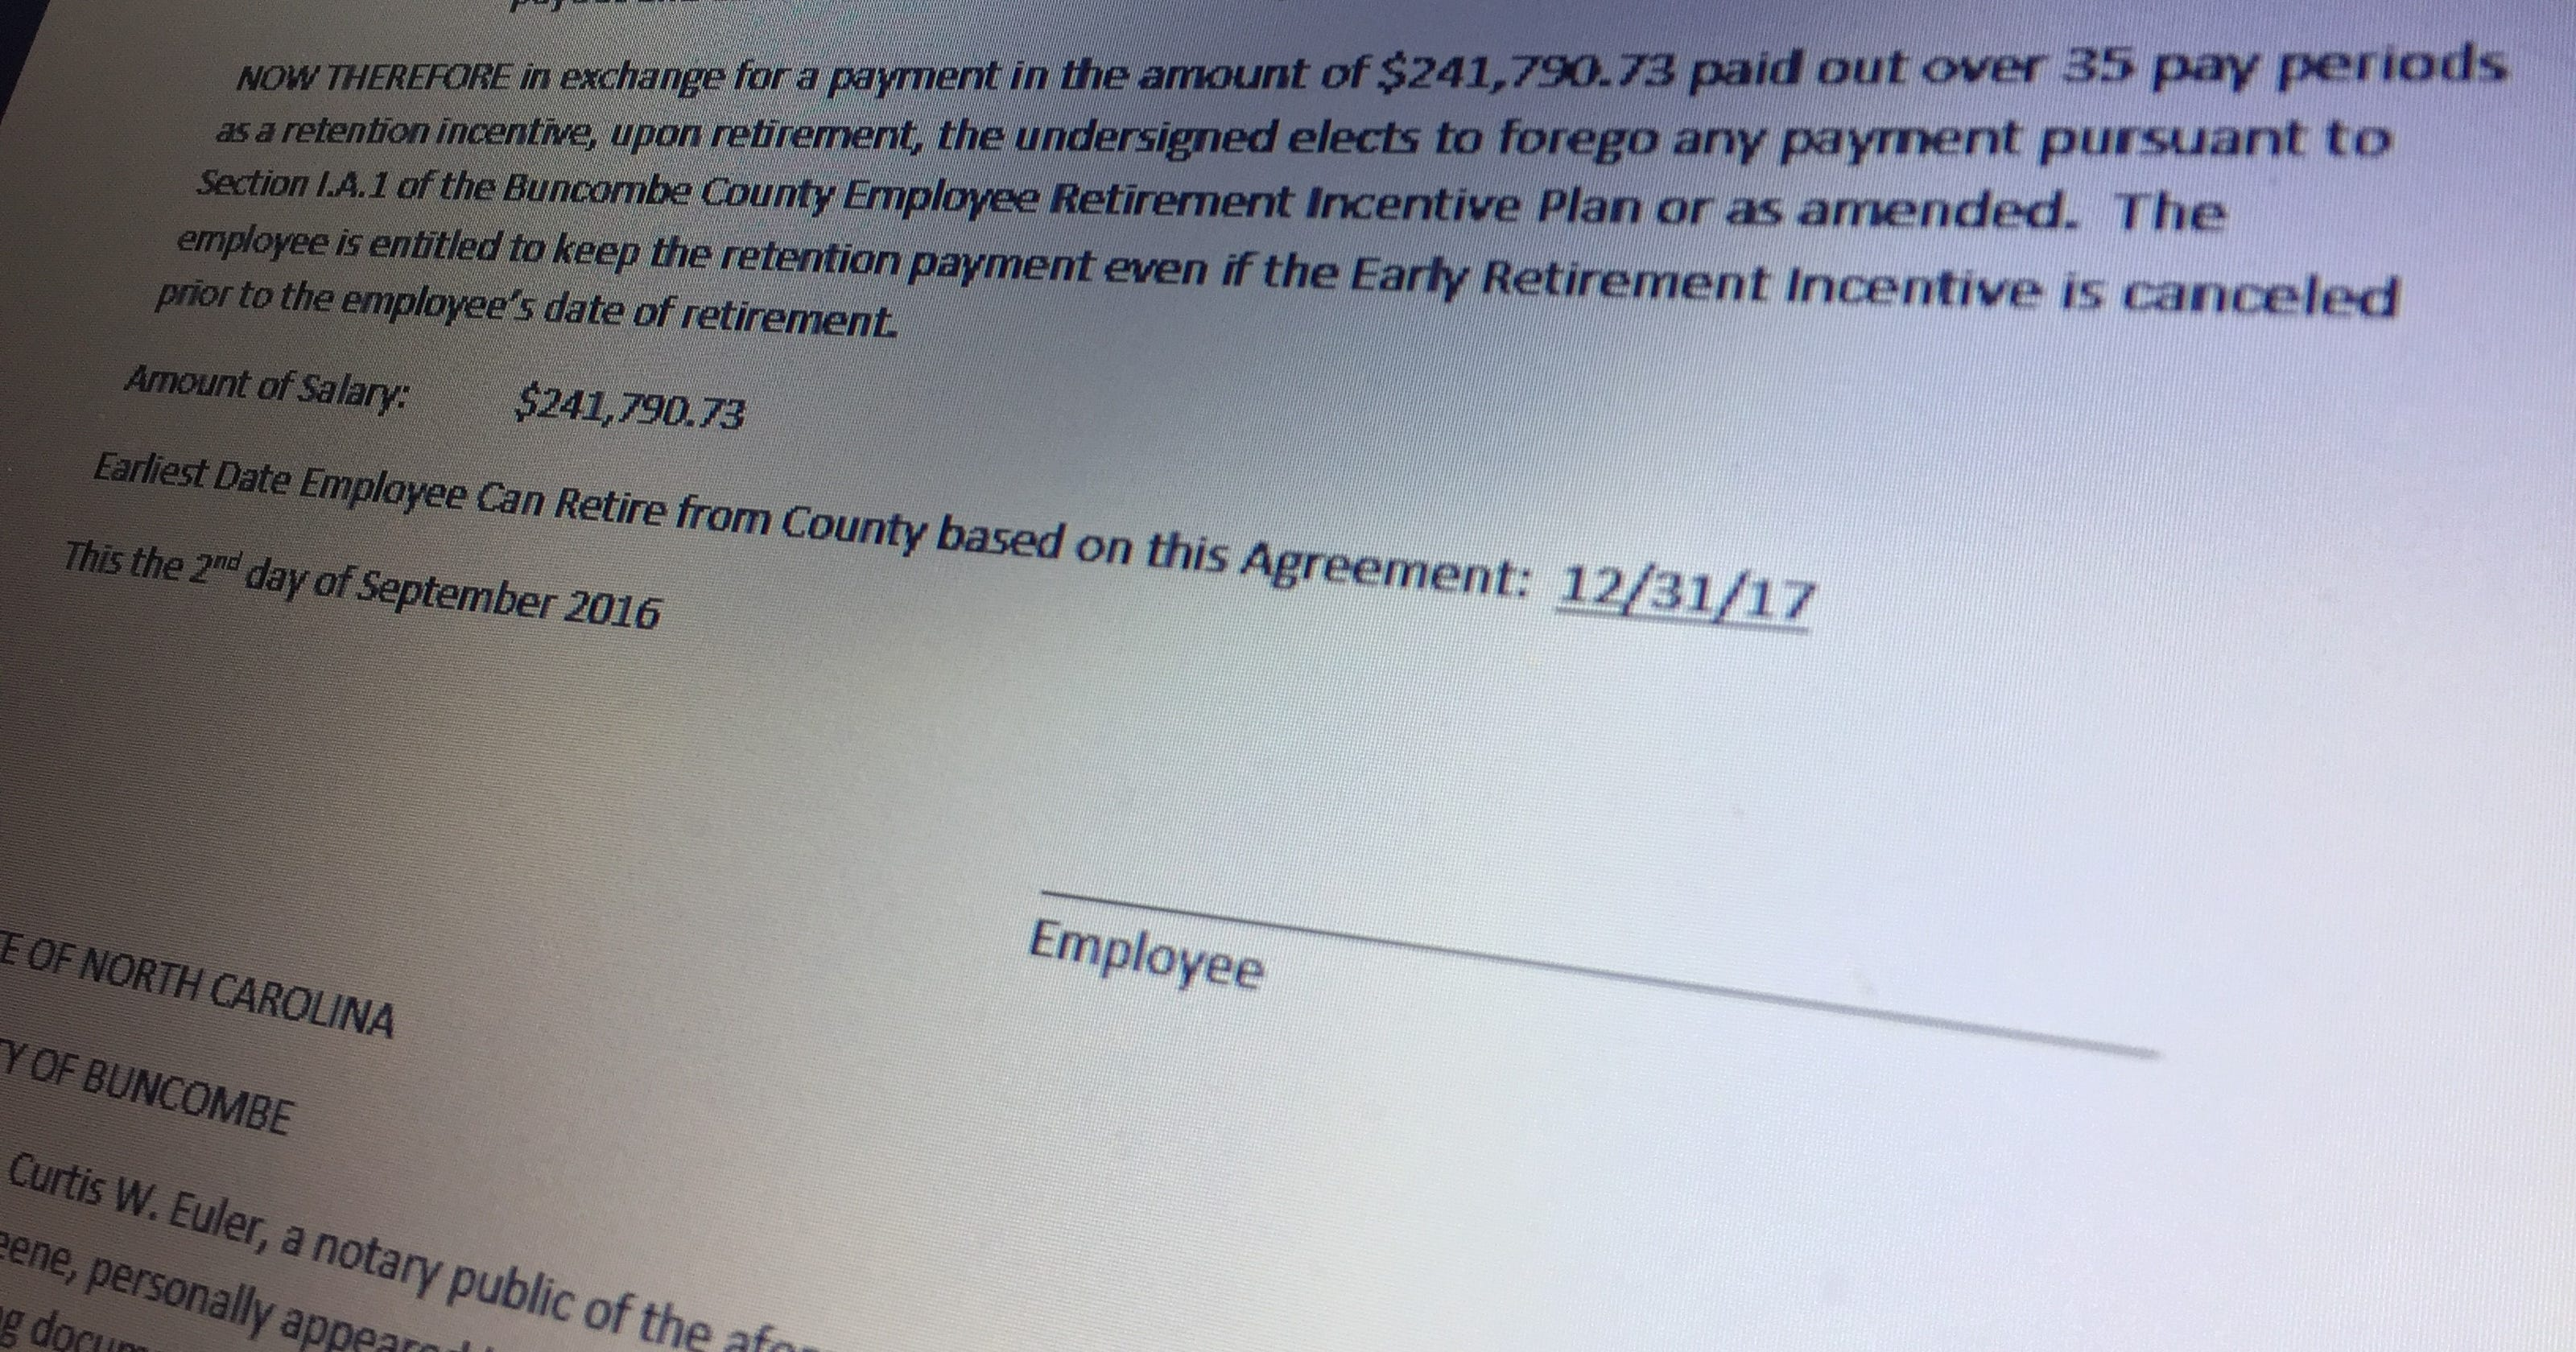 Buncombe staff's raises, big bonuses: 'An insult and a disgrace'